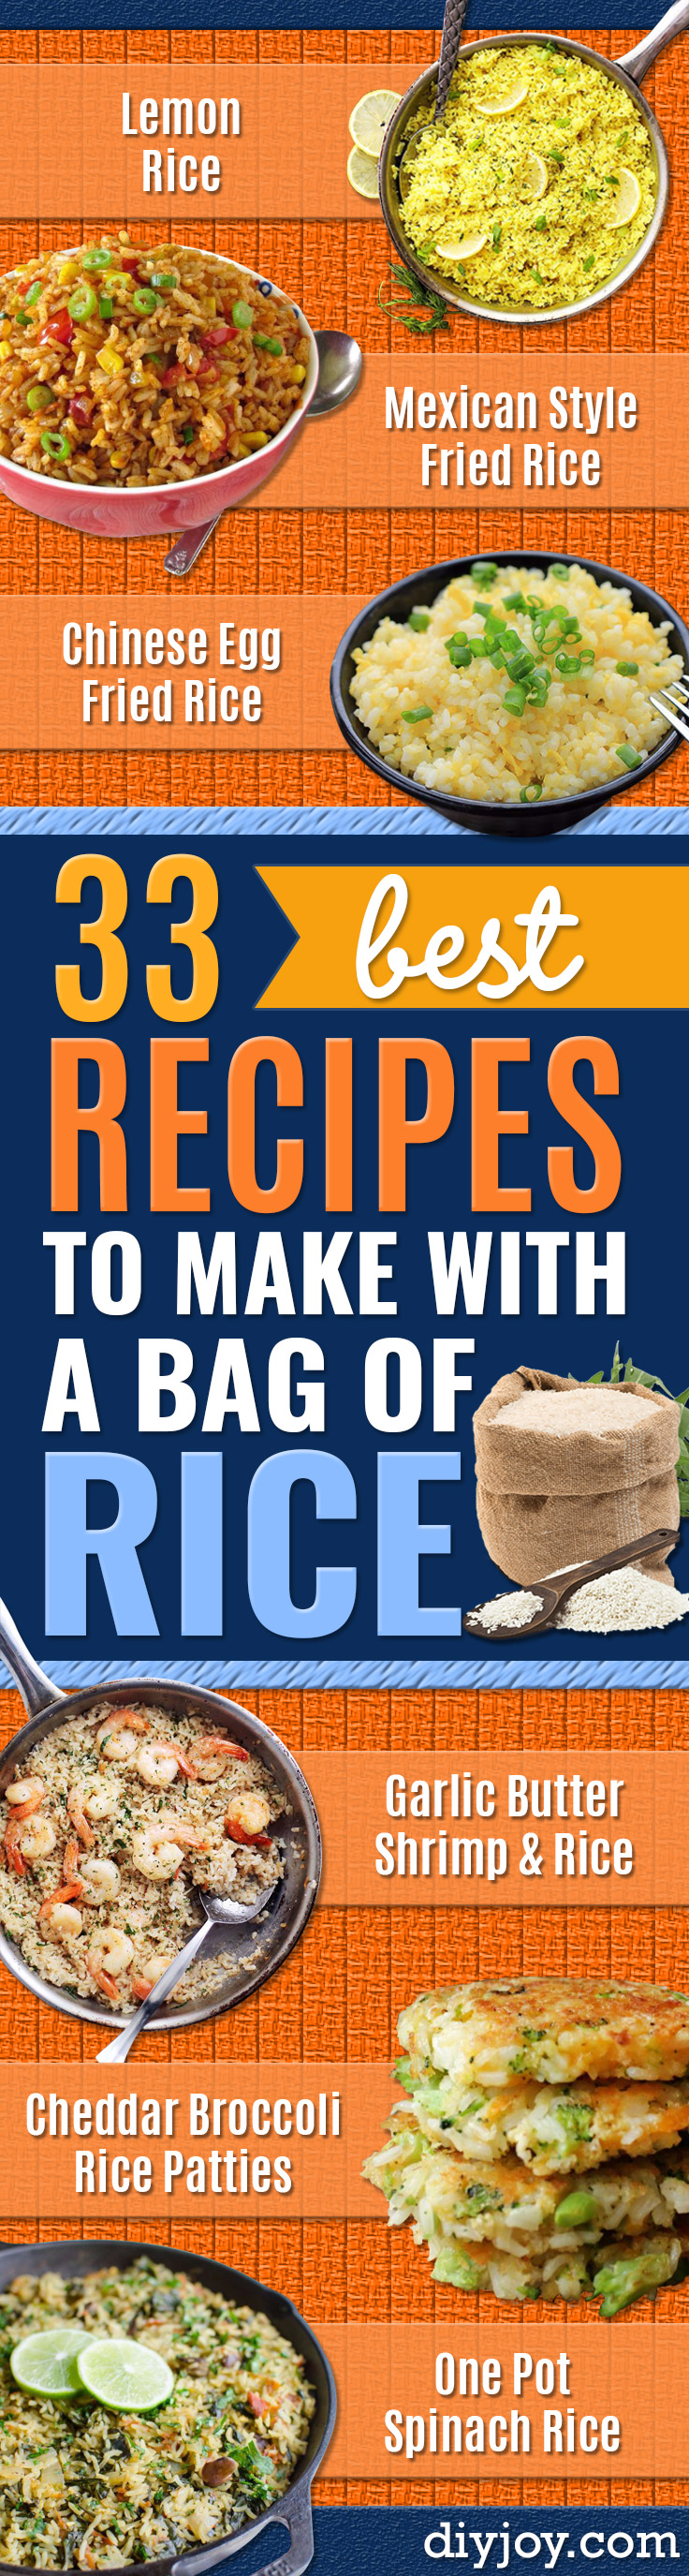 33 Recipes To Make With A Bag of Rice